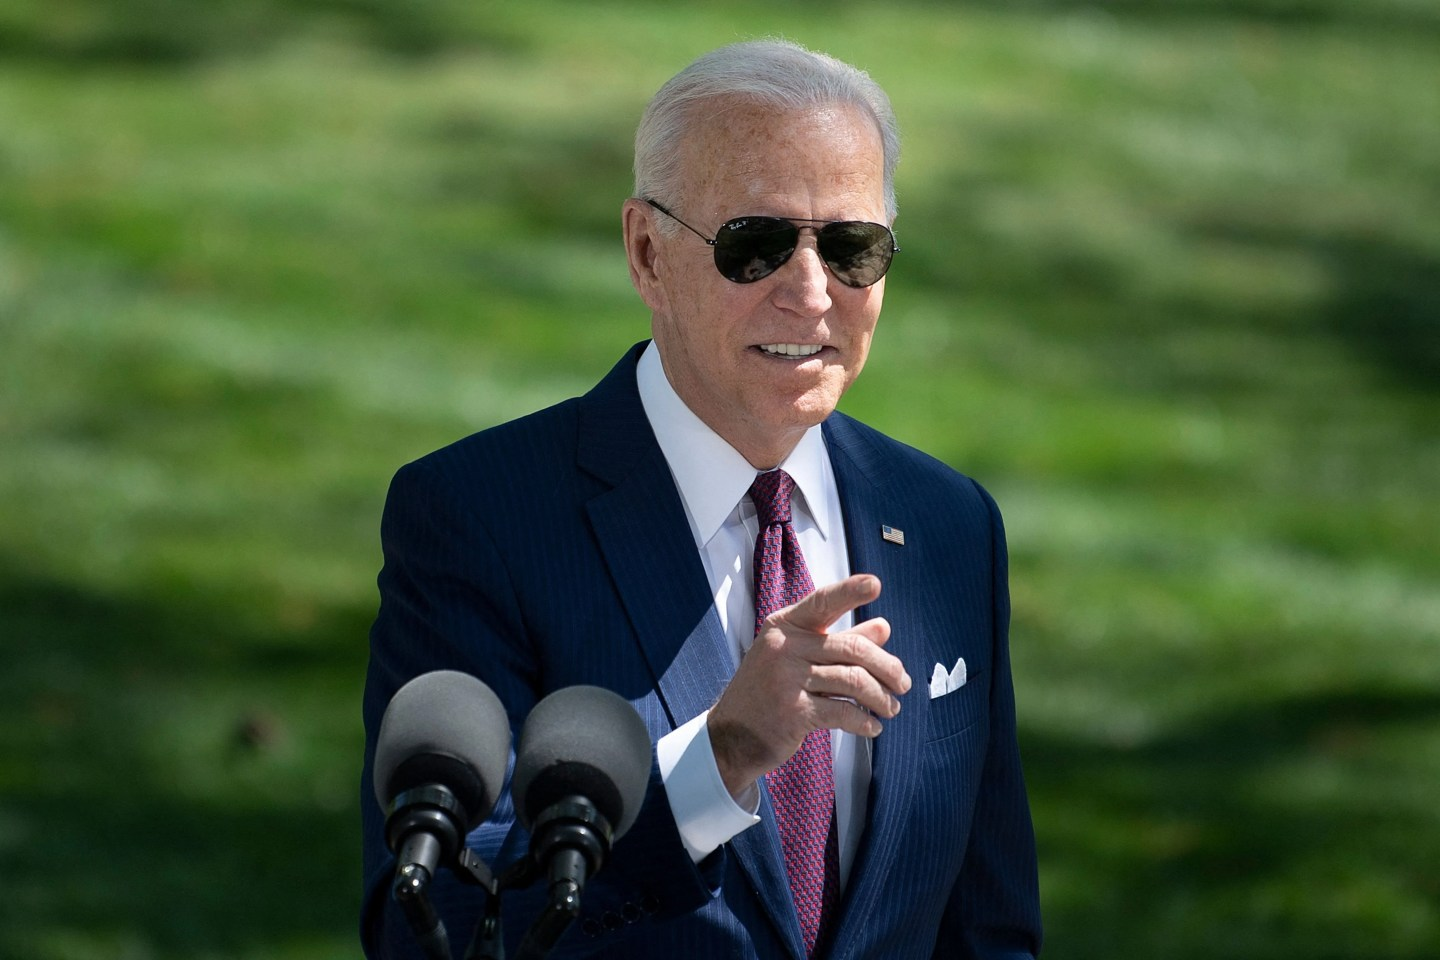 US President Joe Biden speaks about updated CDC guidance on masks for people who are fully vaccinated during an event in front of the White House April 27, 2021, in Washington, DC.